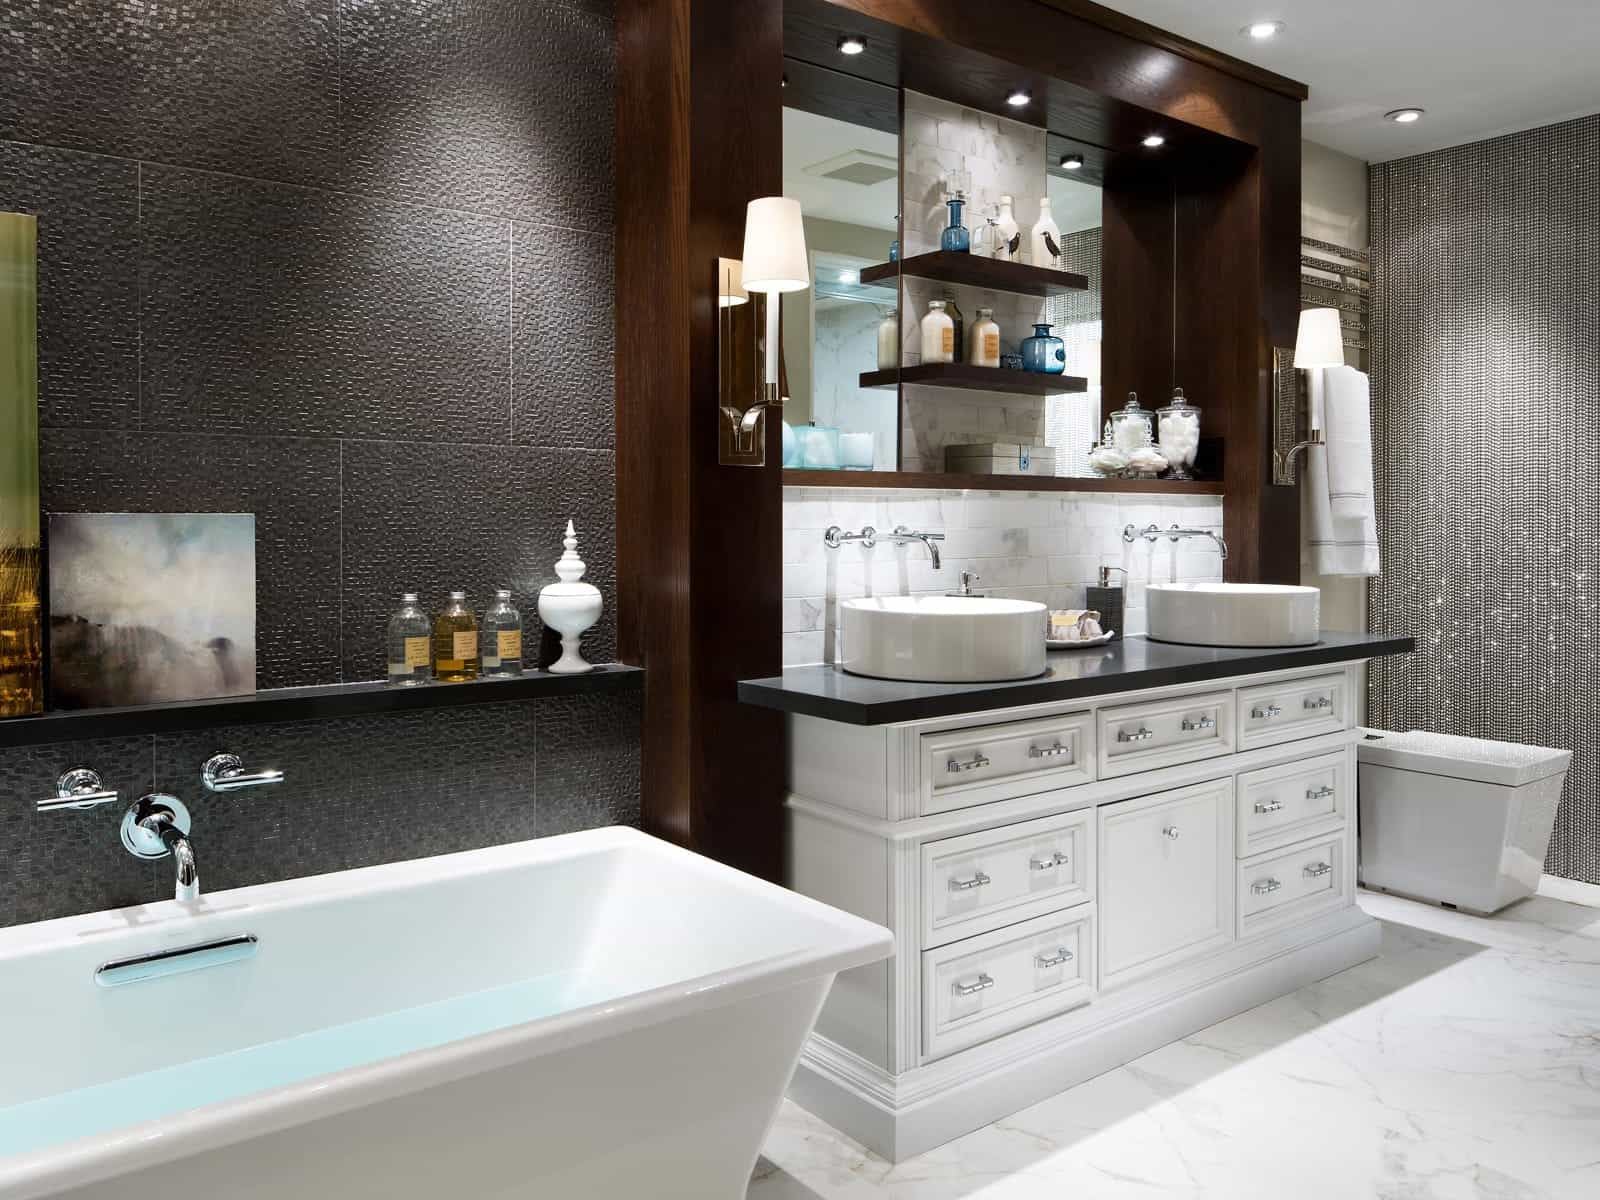 Deluxe Black Colored Baathroom Interior In Elegance Design (View 5 of 10)